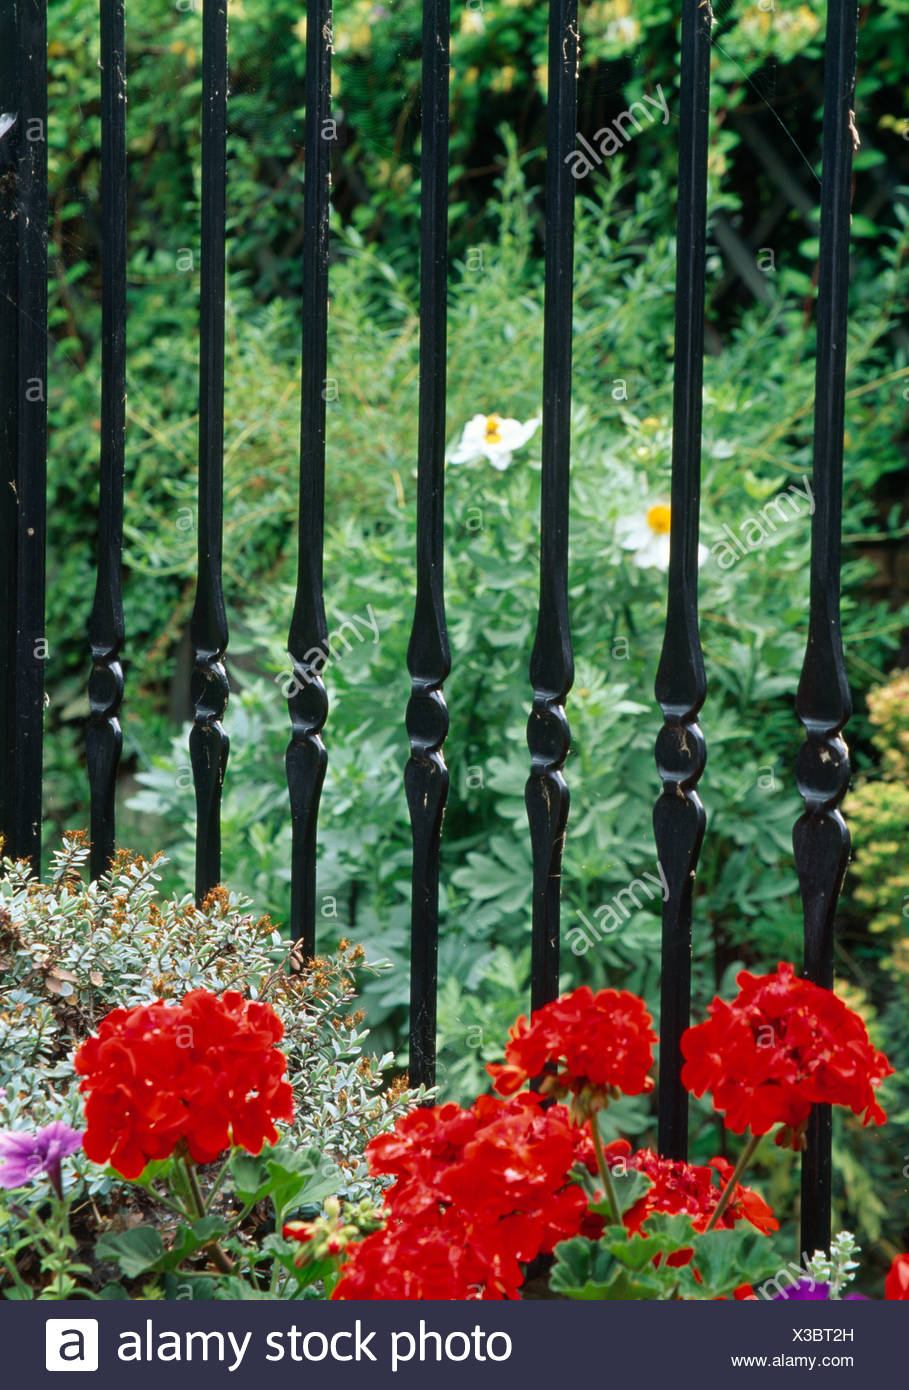 Red geraniums growing in border in front of black cast-iron railings in small garden - Stock Image